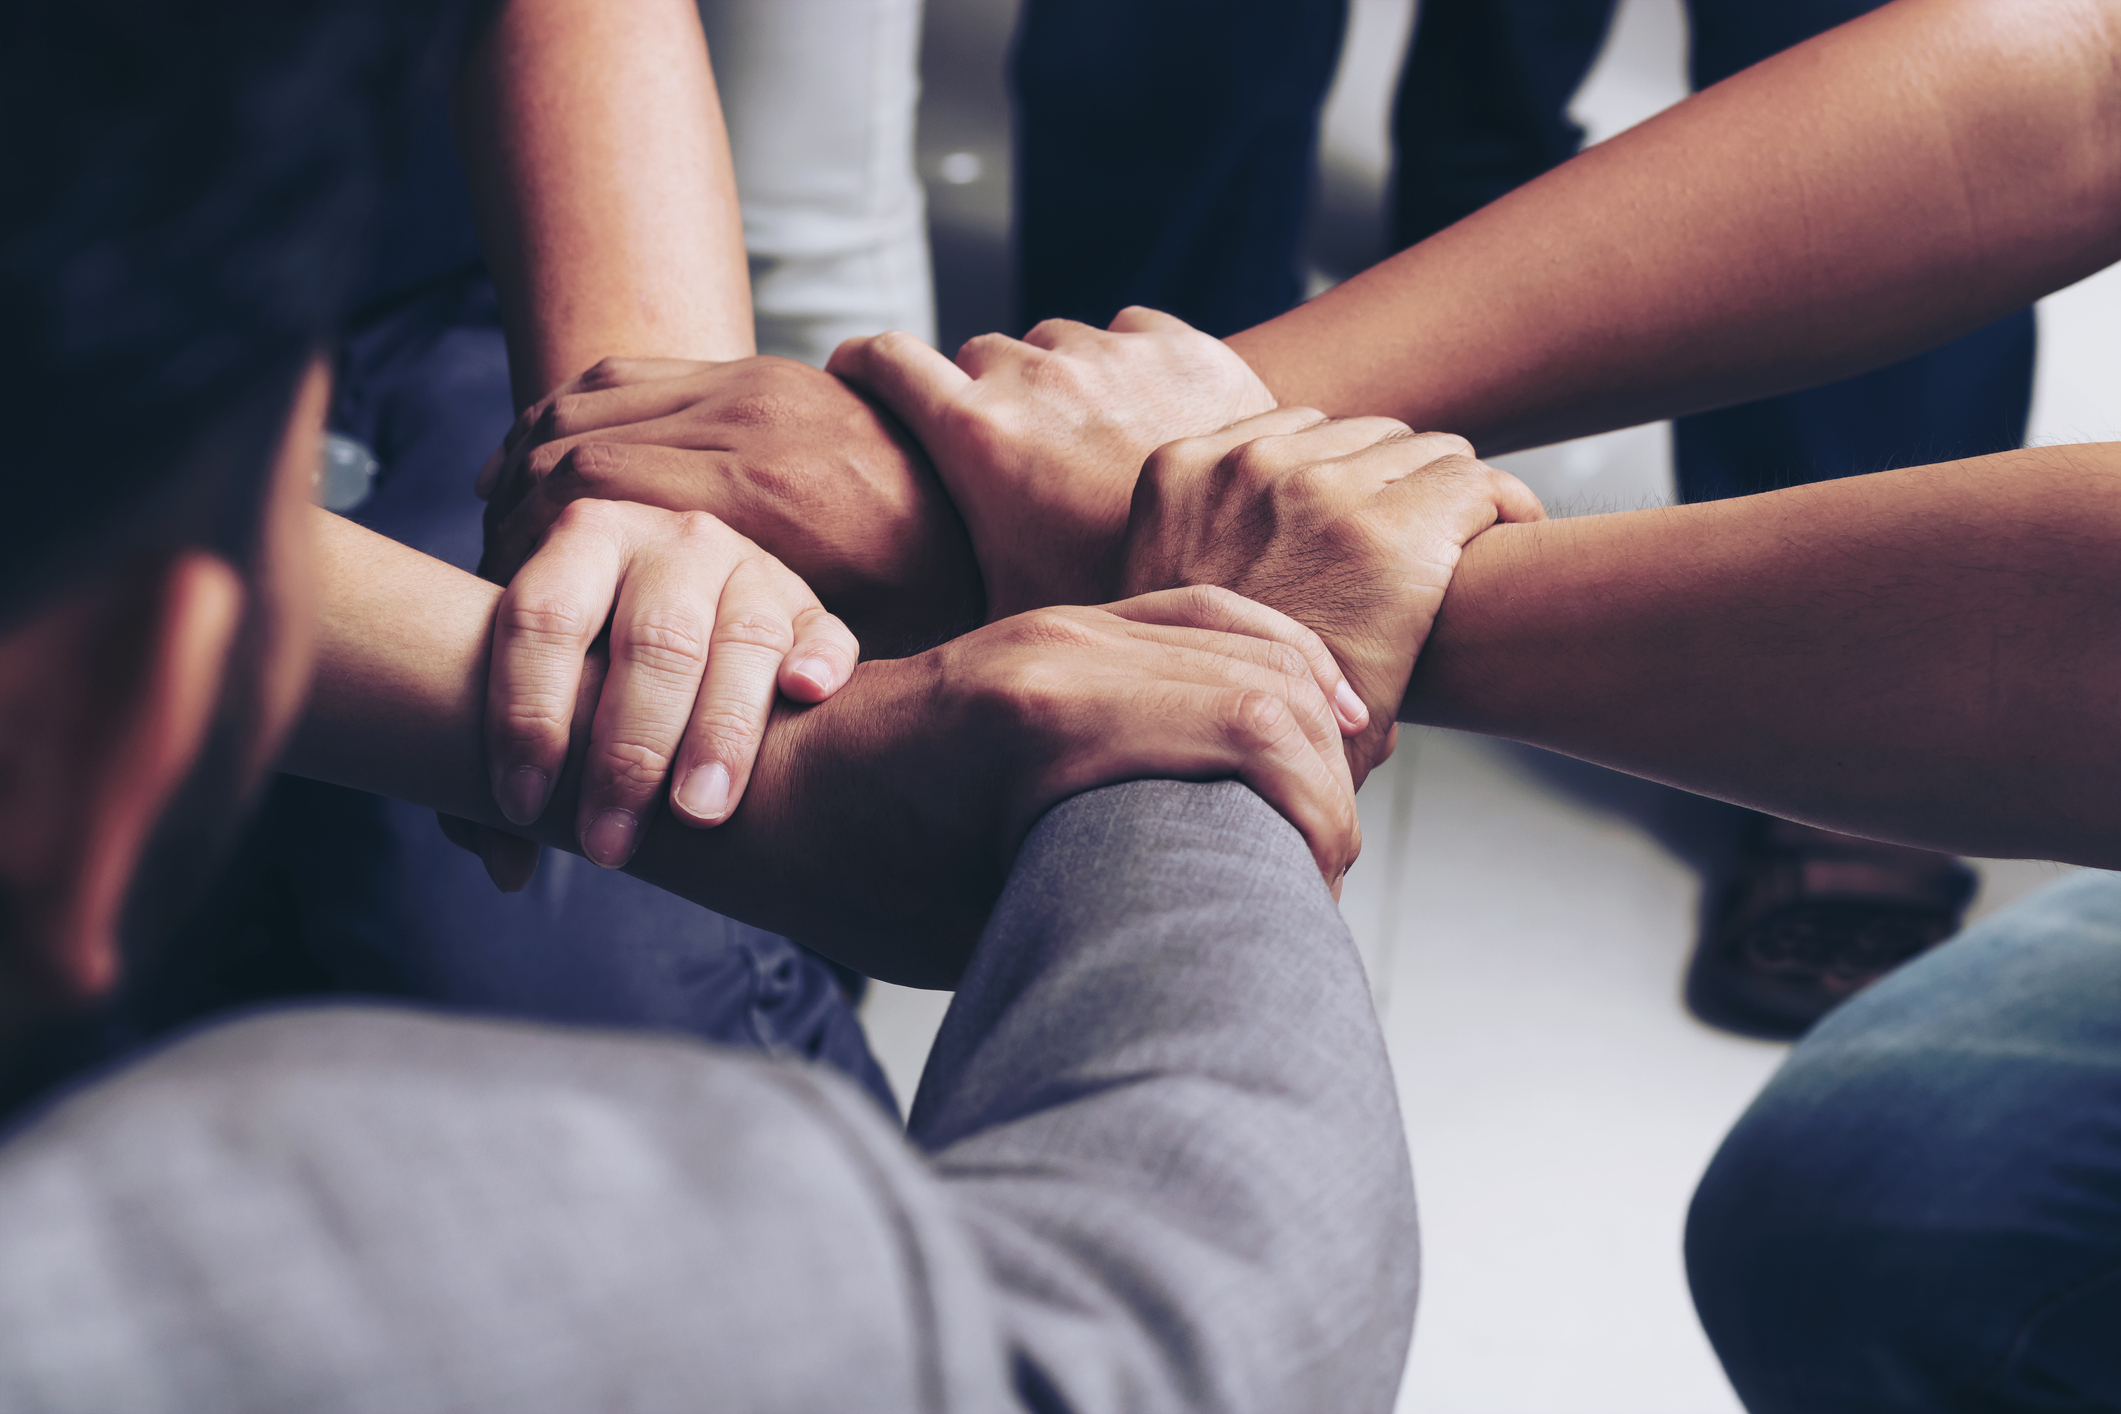 People of different races linking hands